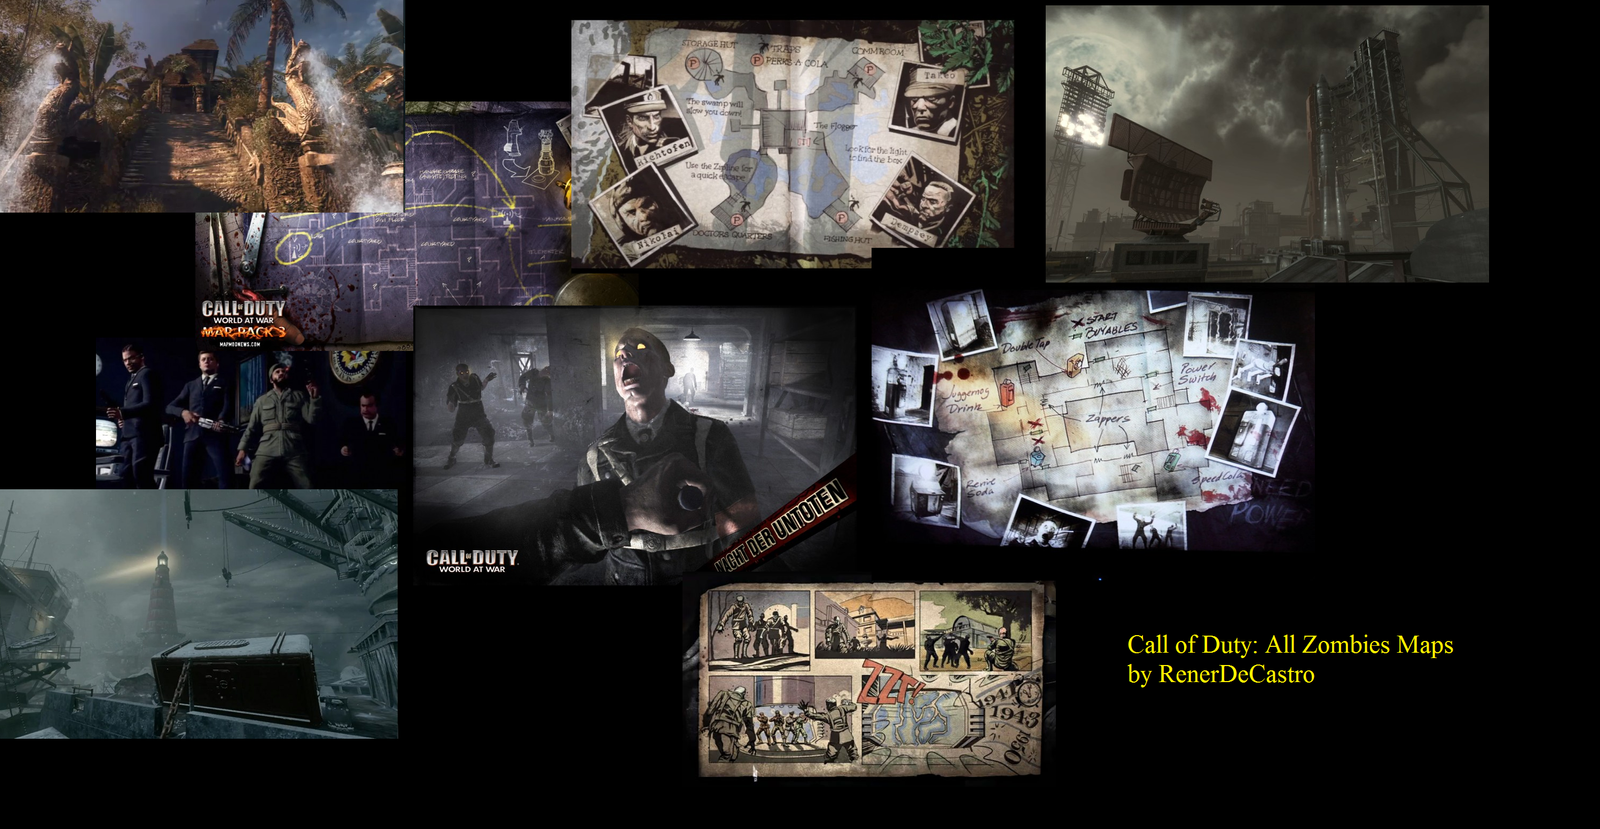 Call of Duty: All Zombies Maps by RenerDeCastro on DeviantArt